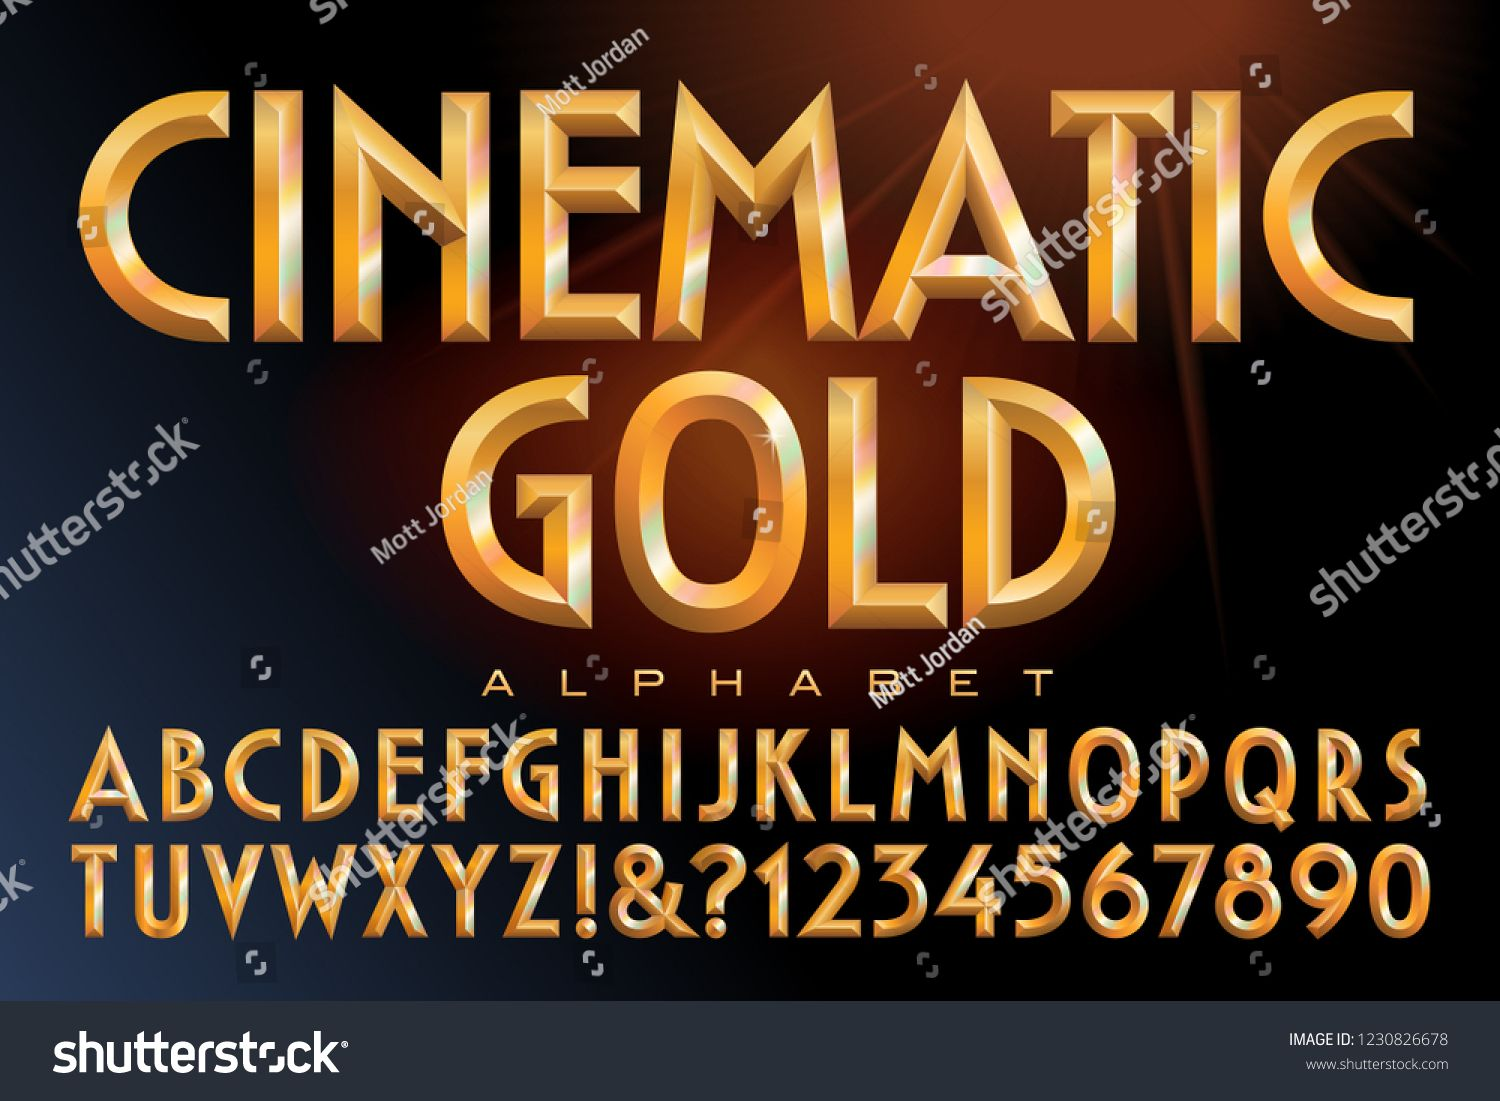 Vector Alphabet Of Golden Letters With Prismatic Rainbow Font Effects This Lettering Is Similar To Classic Cinema Titling St Lettering Fonts Lettering Letters